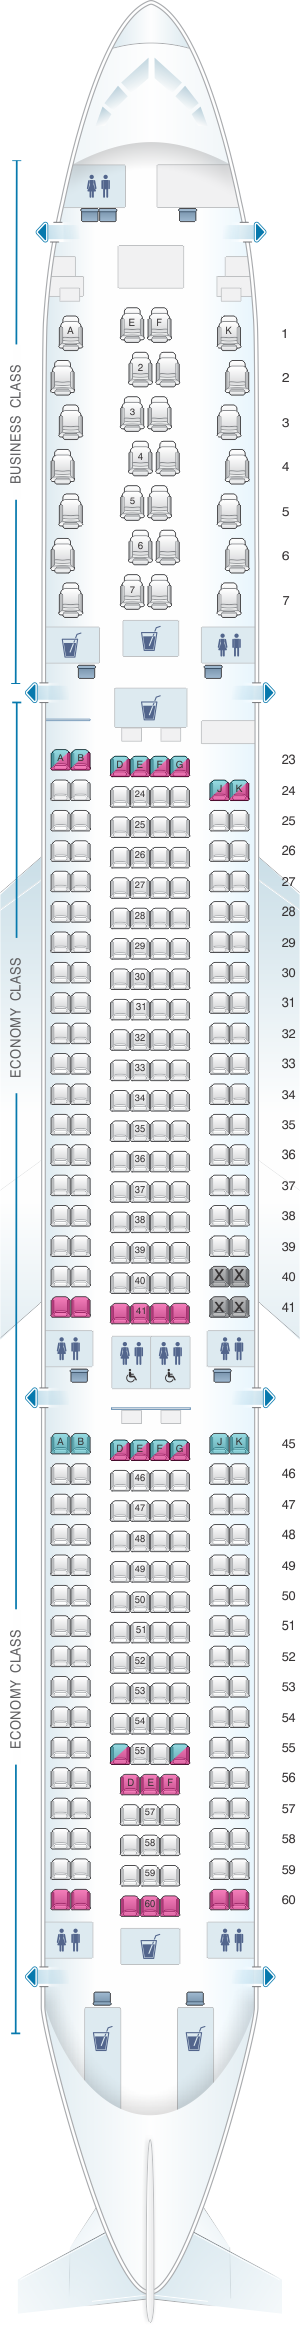 Seat map for Qantas Airways Airbus A330 300